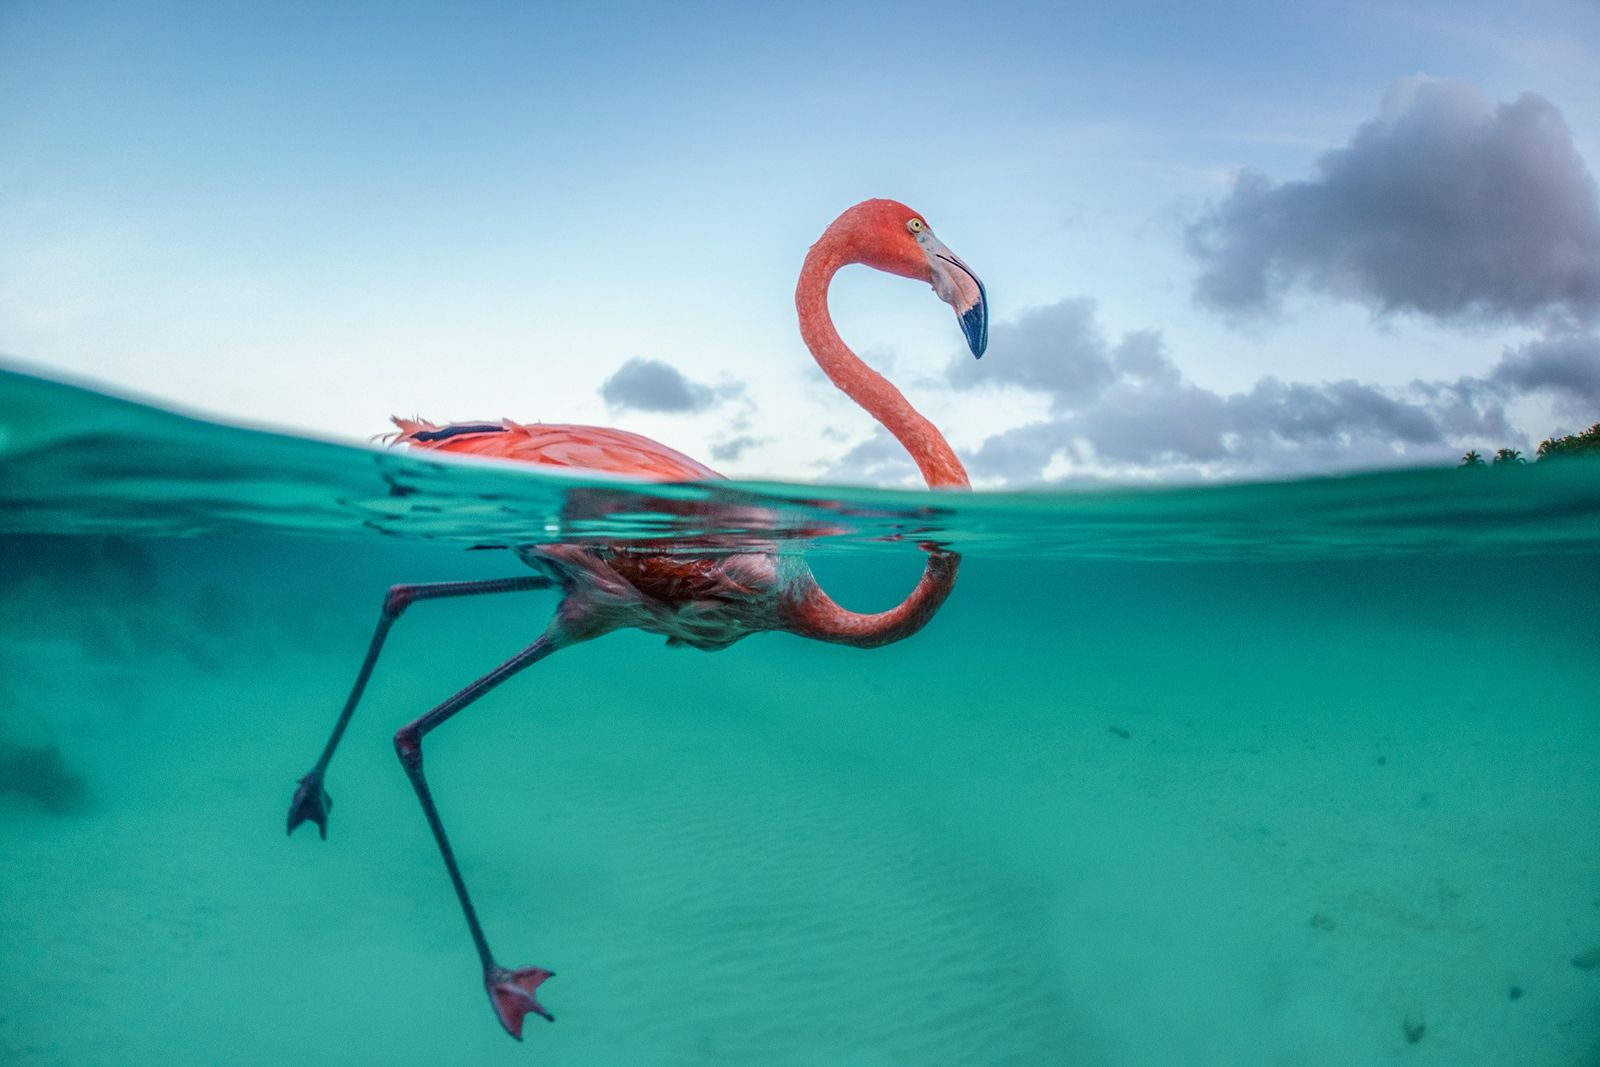 Meet Flamingo Bob, the poster bird for conservation